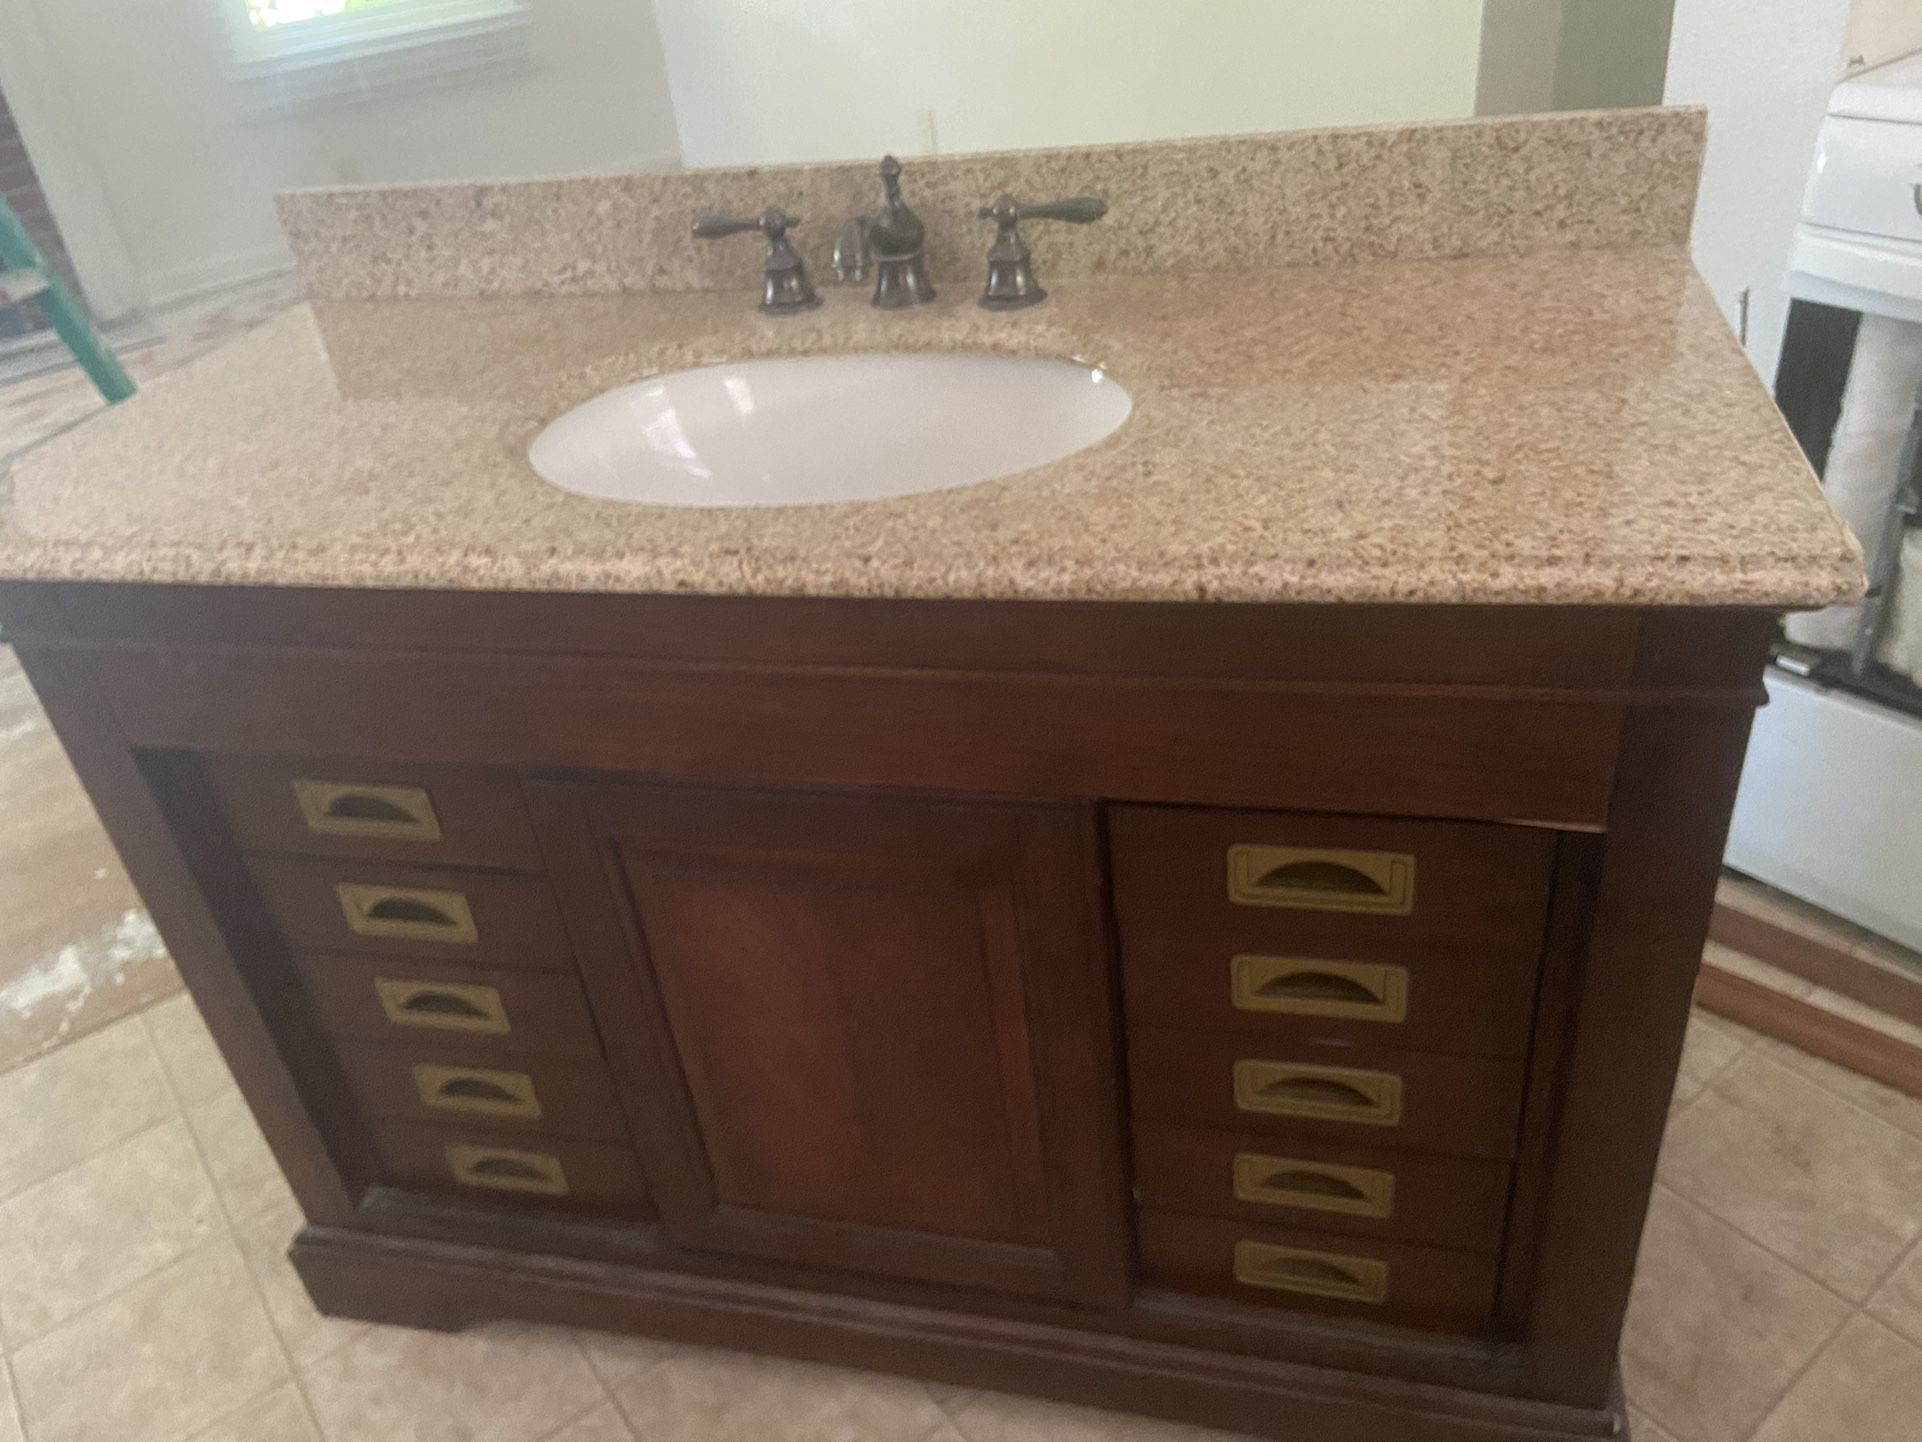 Vanity excellent condition Moving out Sale